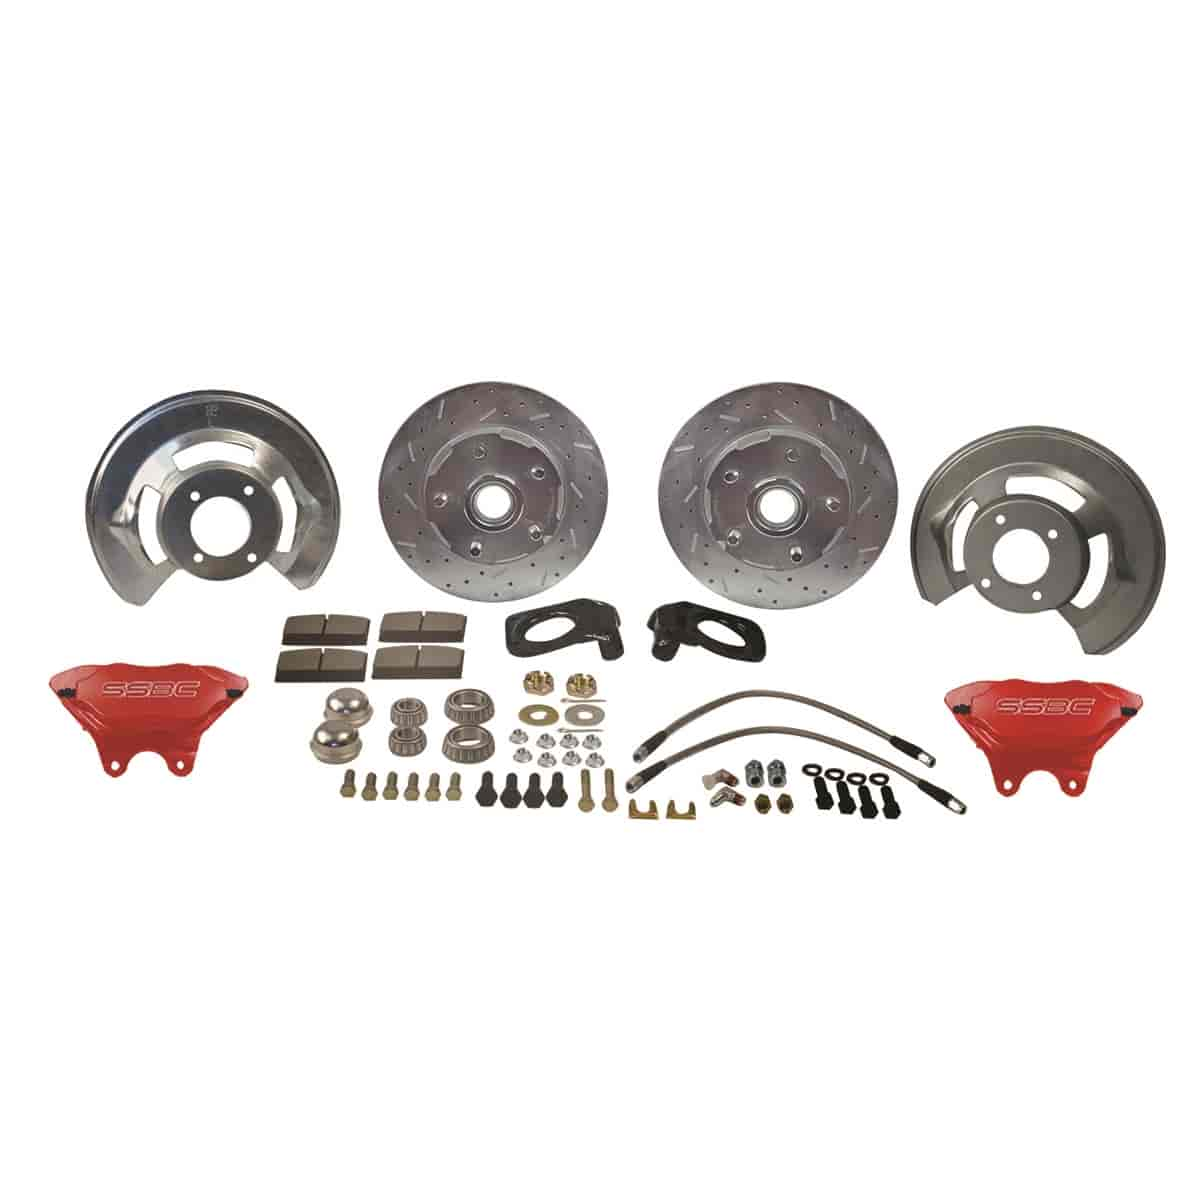 SSBC W132-4R - Stainless Steel Brakes Competition 4-Piston Front Disc Conversion Kits